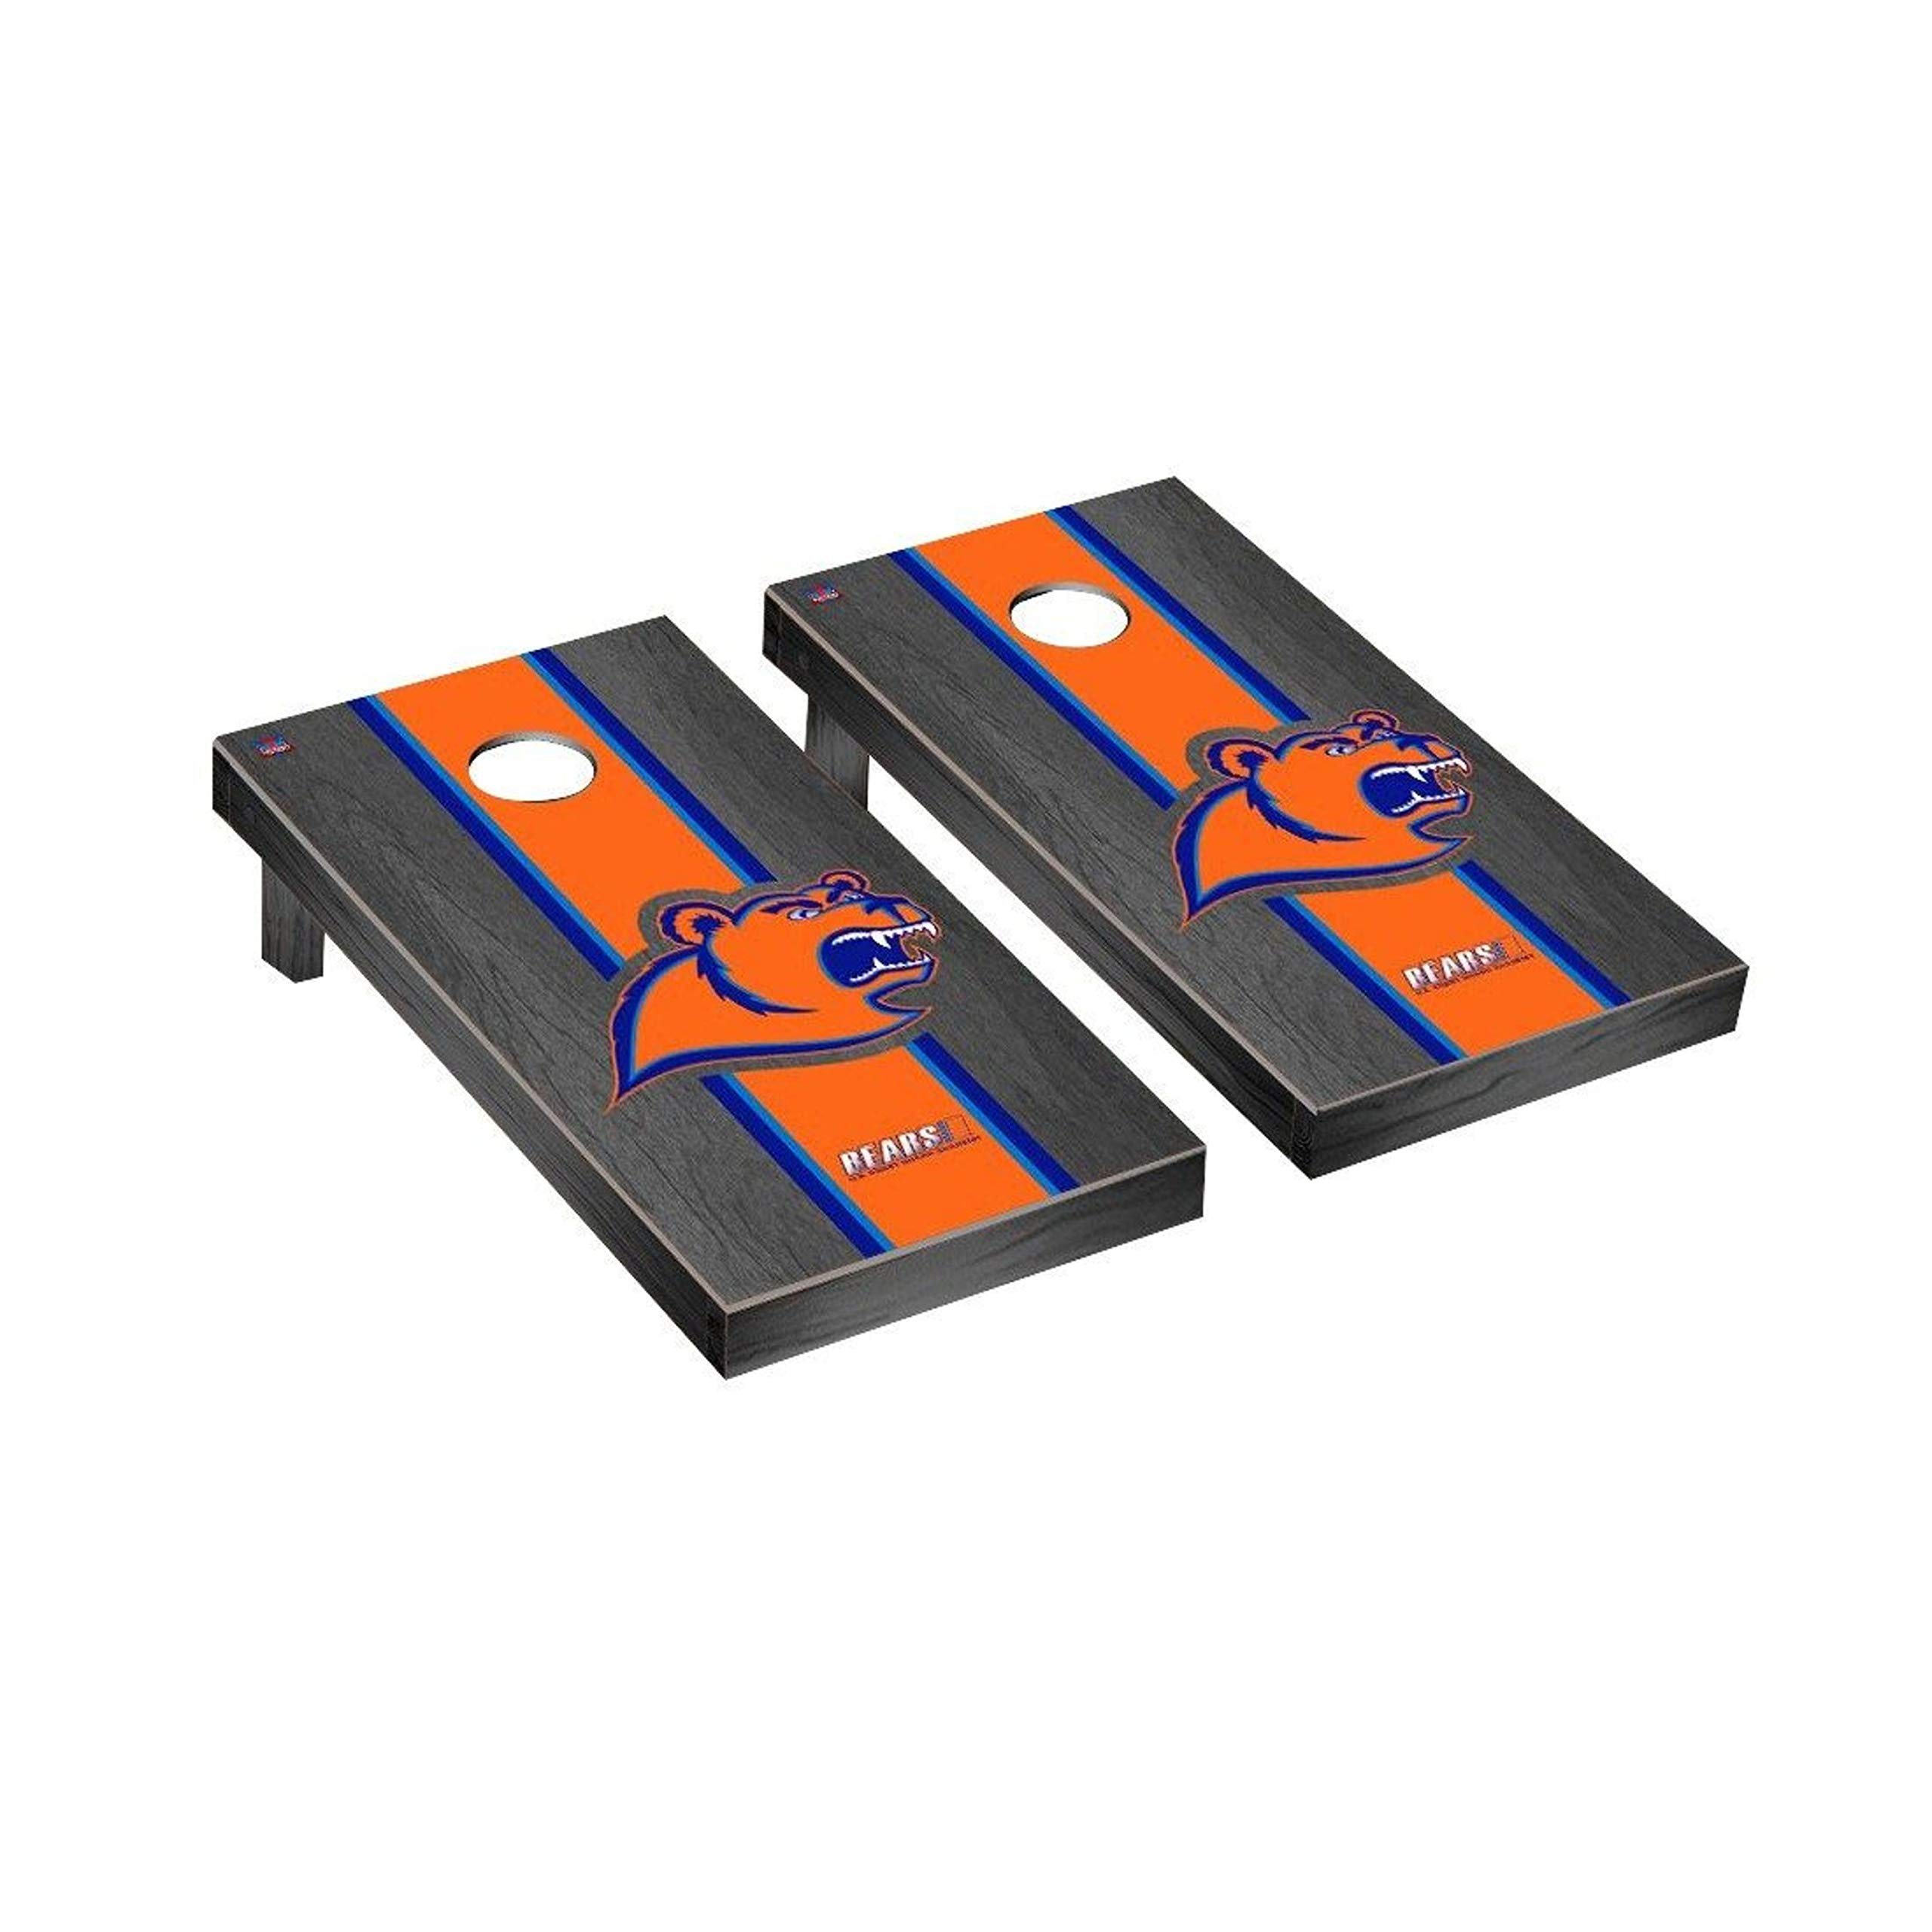 Victory Tailgate Regulation Collegiate NCAA Onyx Stained Stripe Series Cornhole Board Set - 2 Boards, 8 Bags - US Coast Guard Academy USCGA Bears by Victory Tailgate